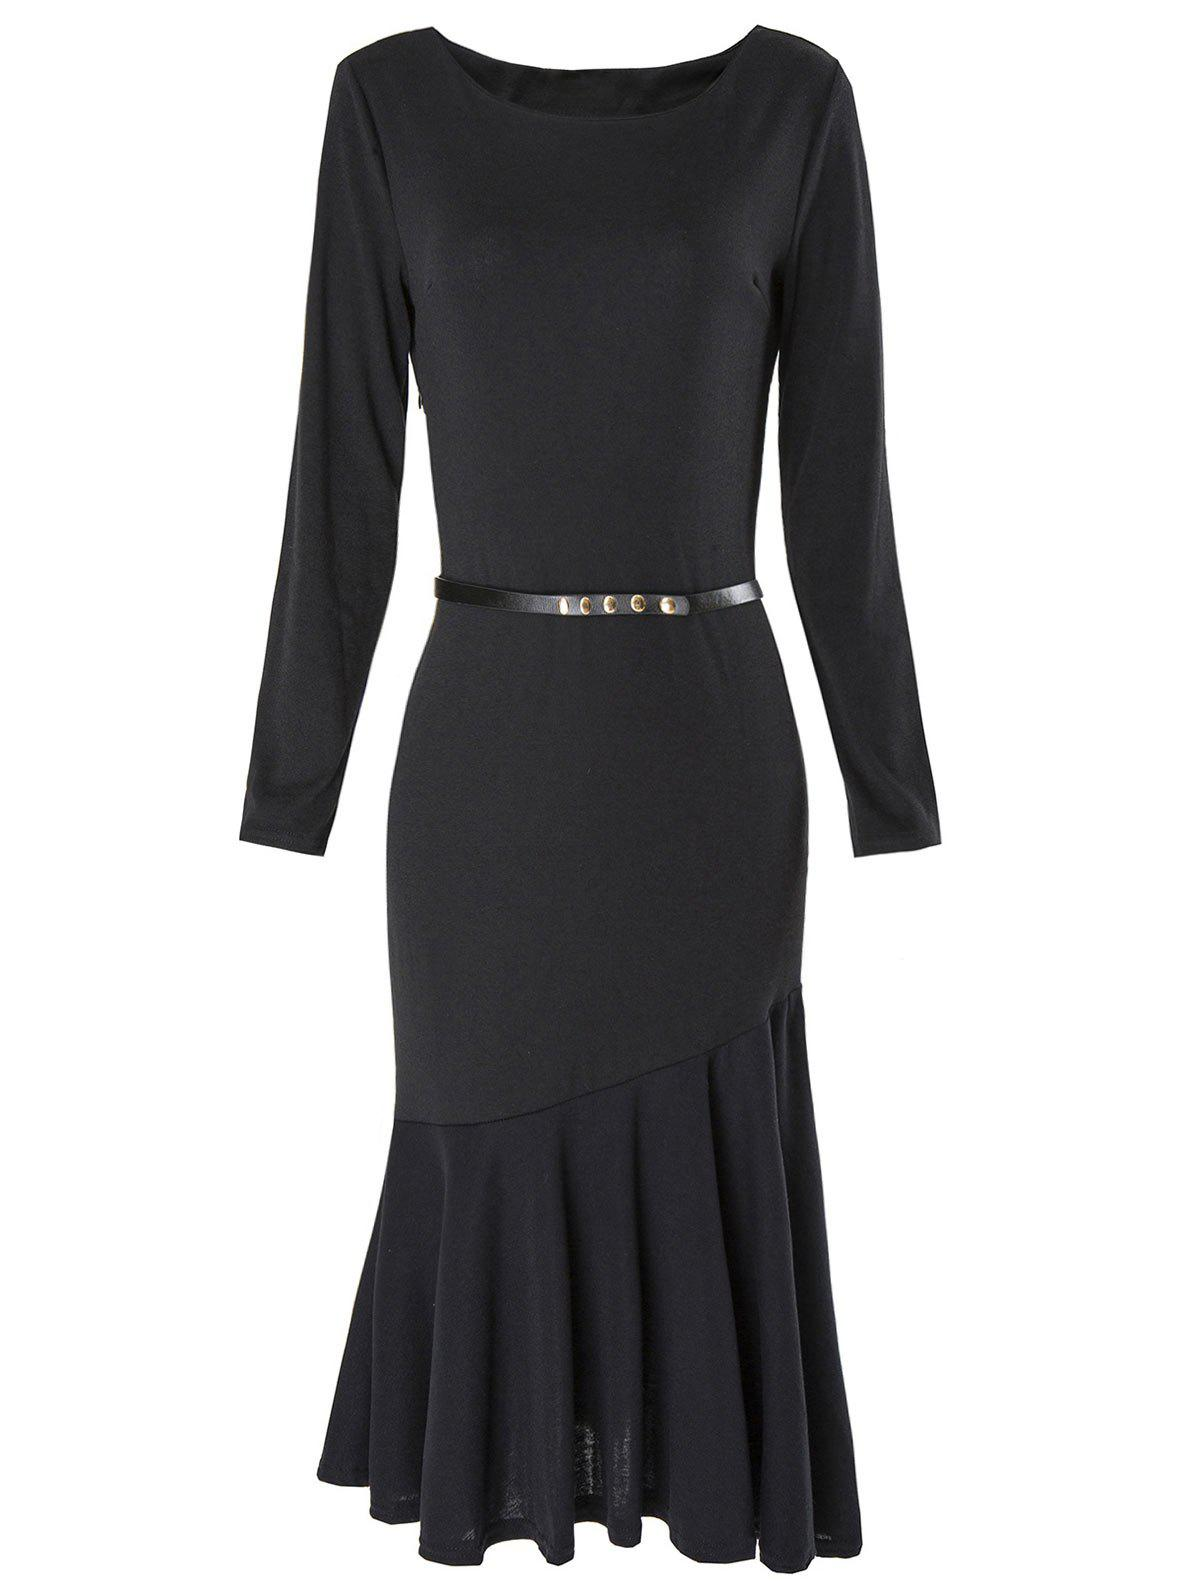 Black Xl Boat Neck Long Sleeve Bodycon Mermaid Dress